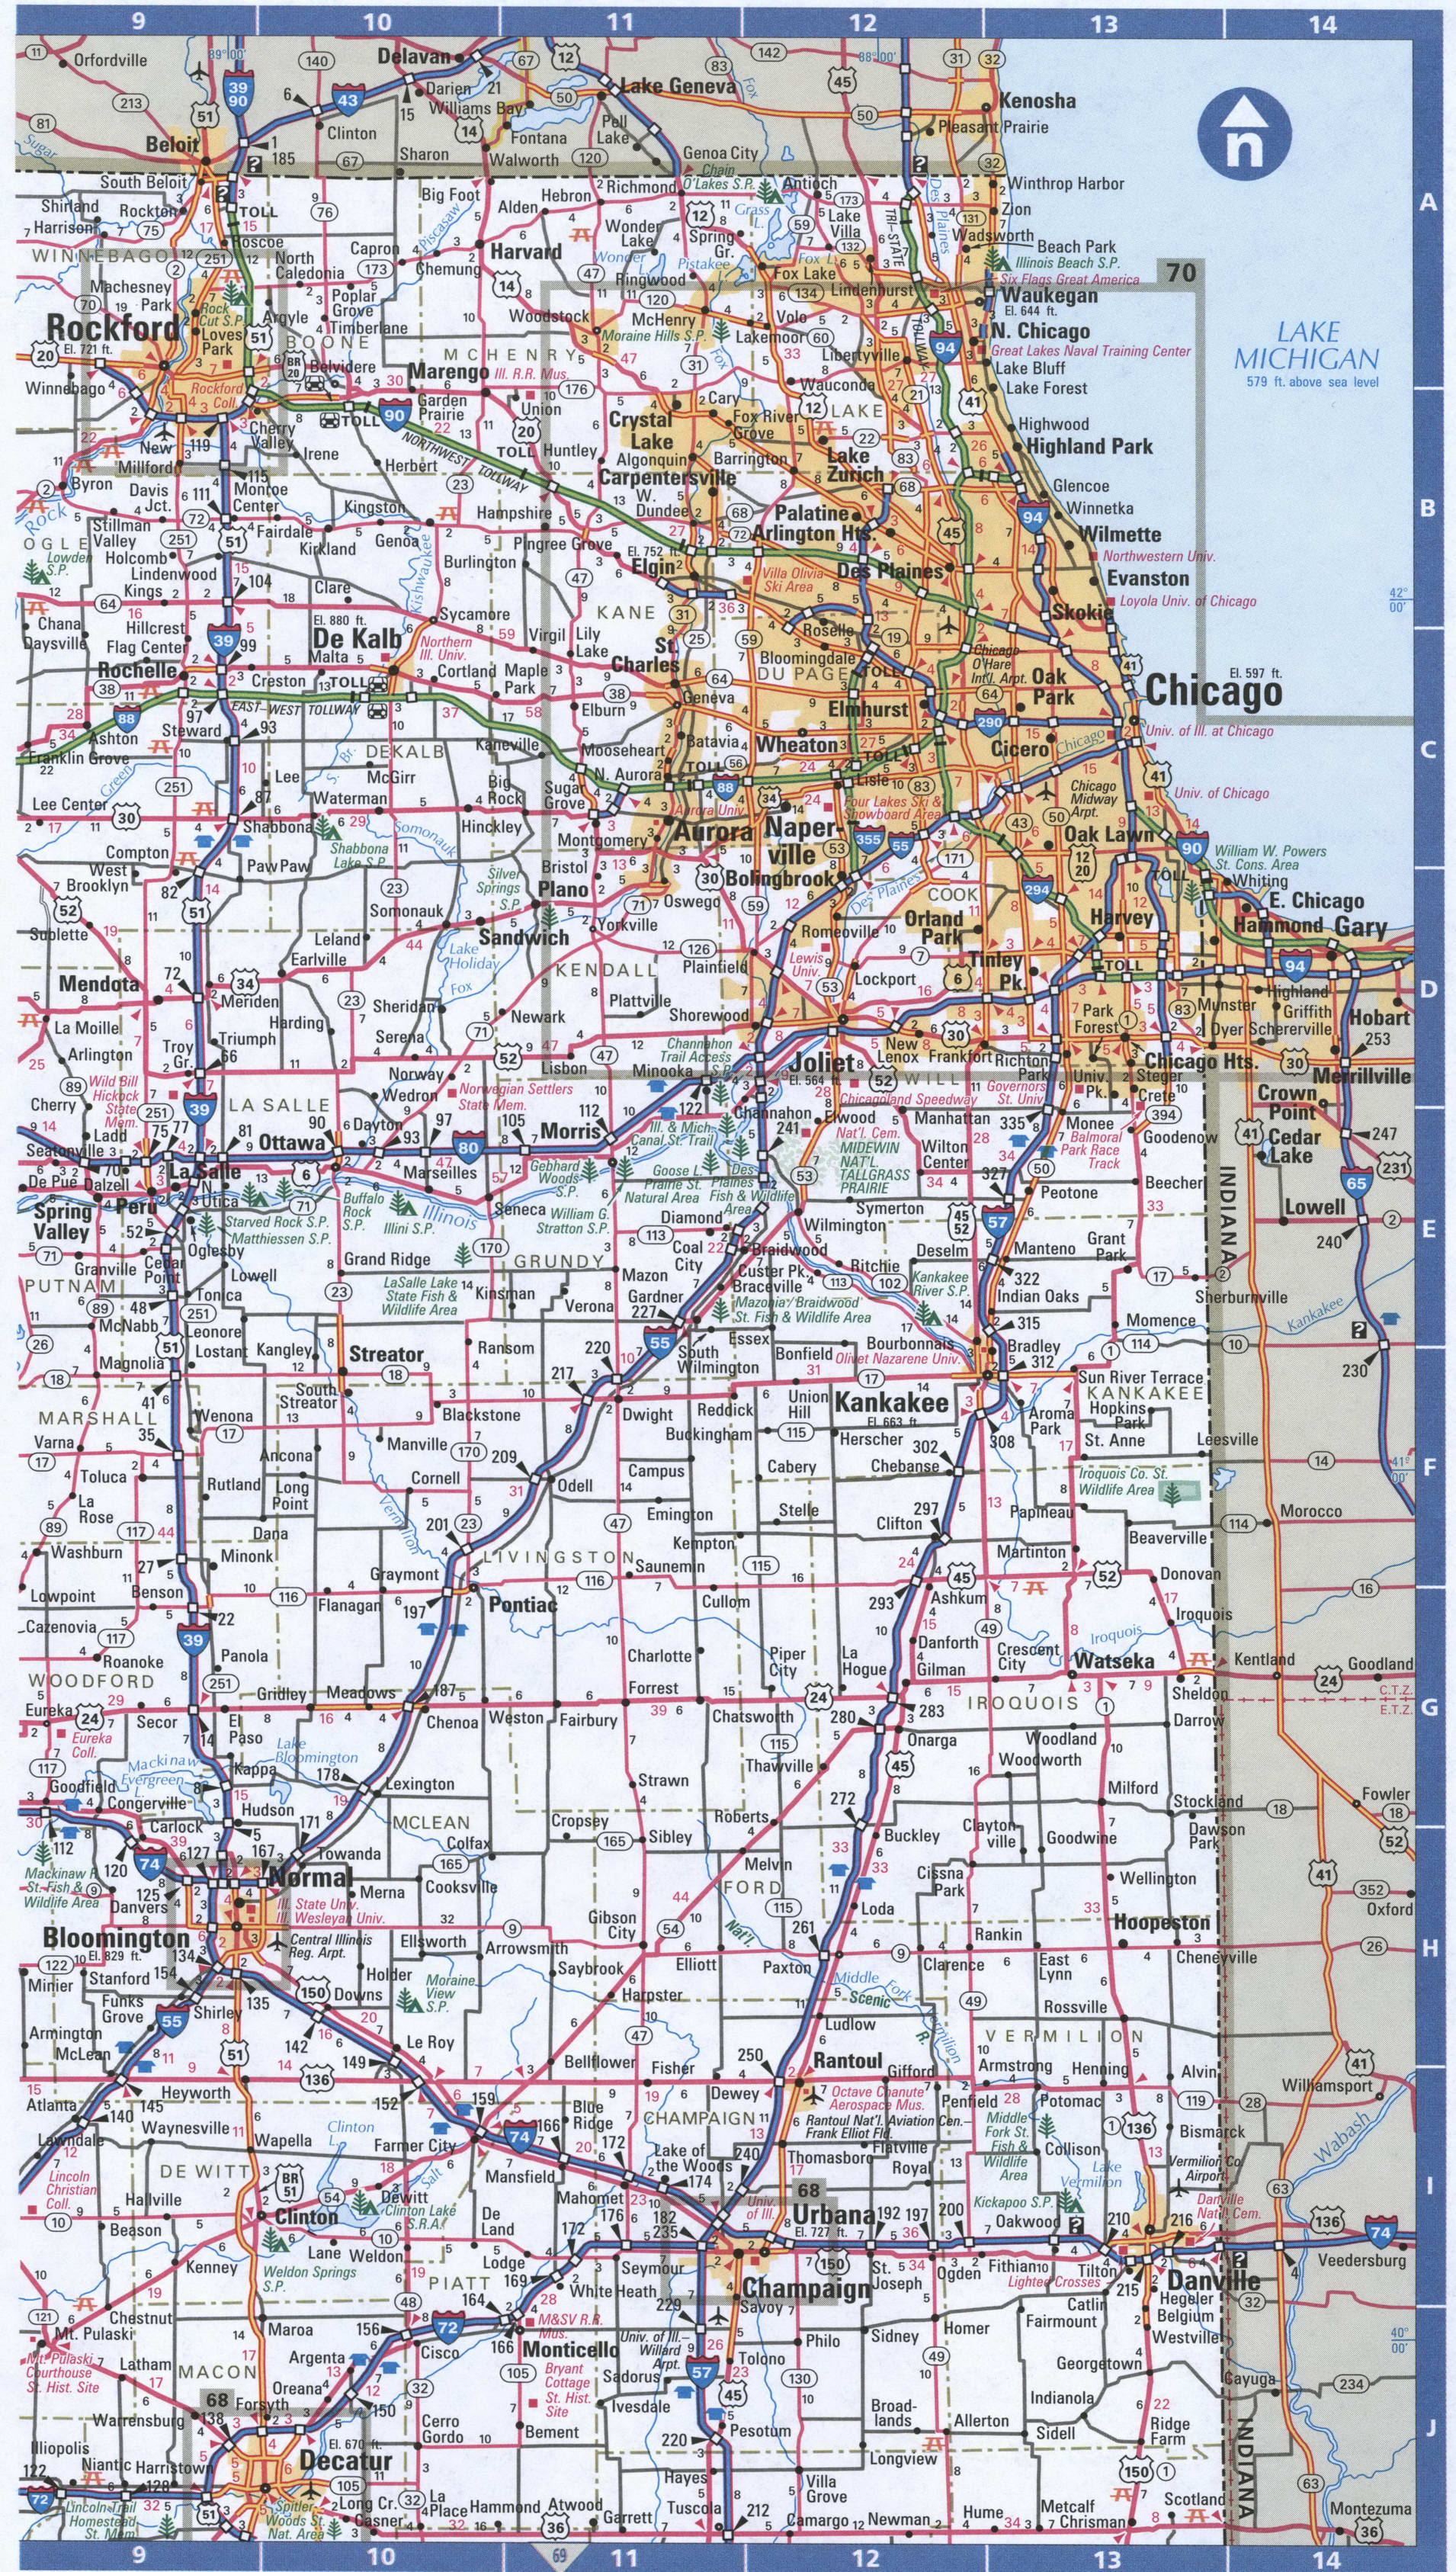 NorthEast Illinois map